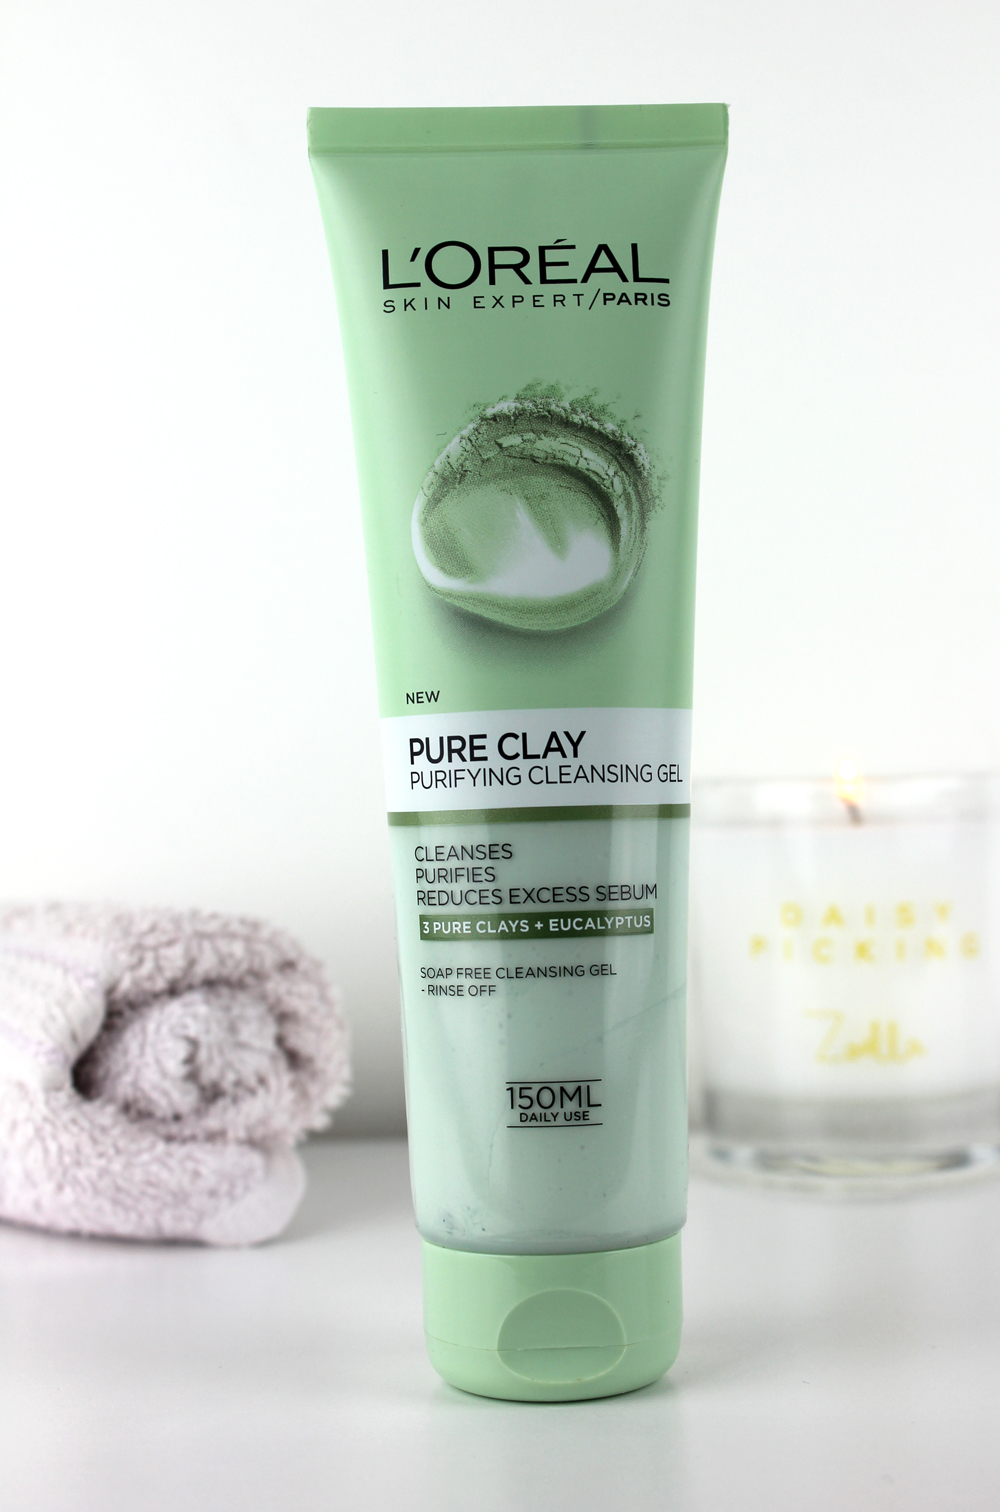 Loreal Pure Clay Purifying Cleansing Gel